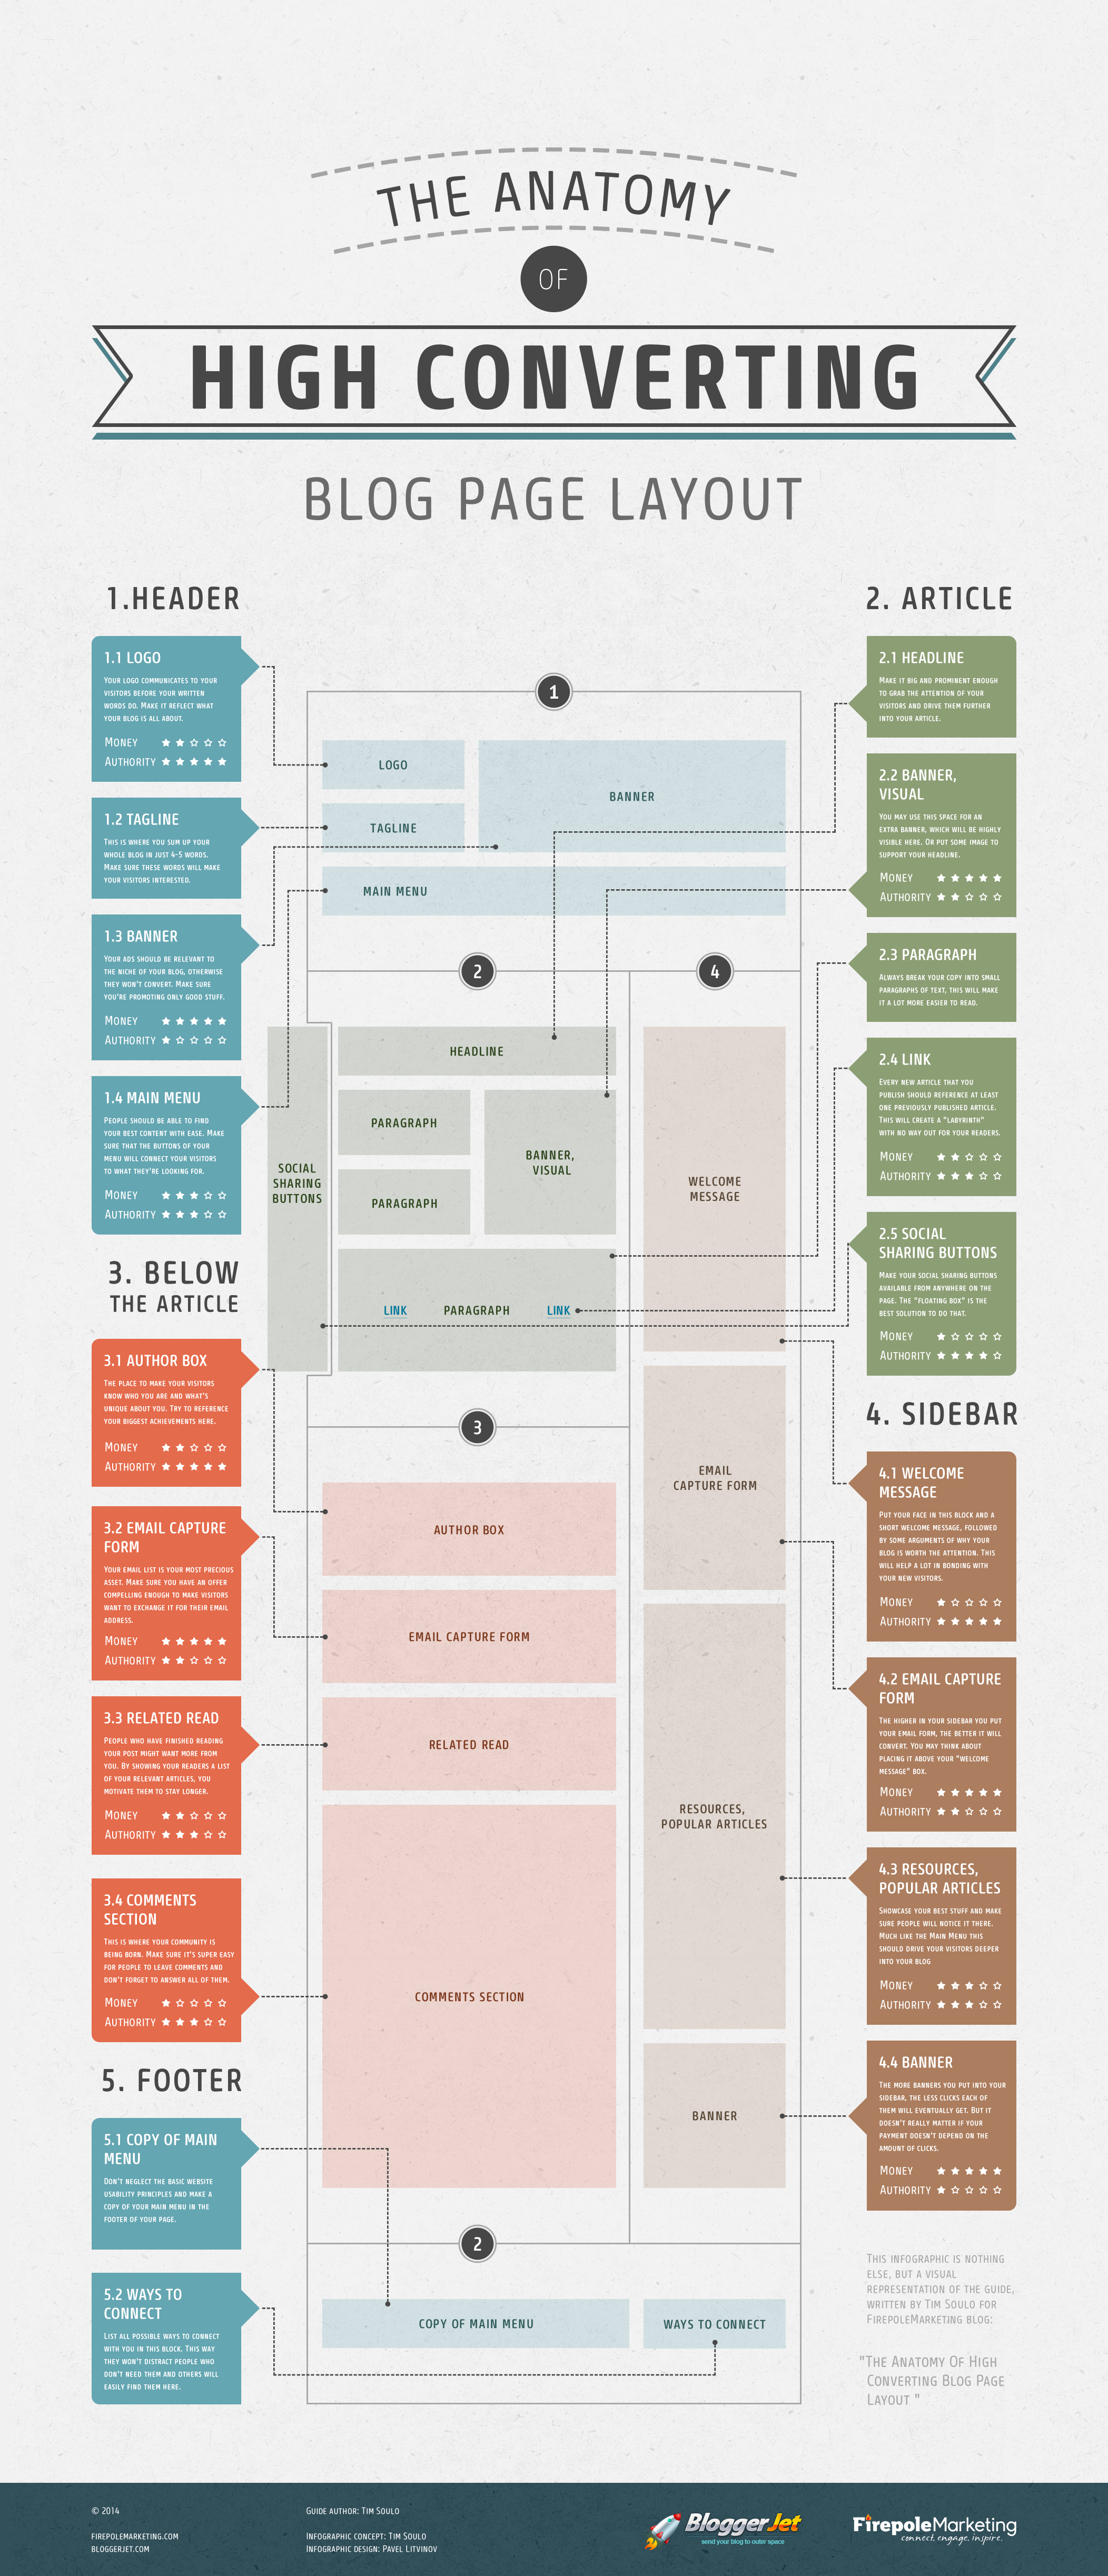 The-Anatomy-Of-High-Converting-Blog-Page-Layout-FULL-2